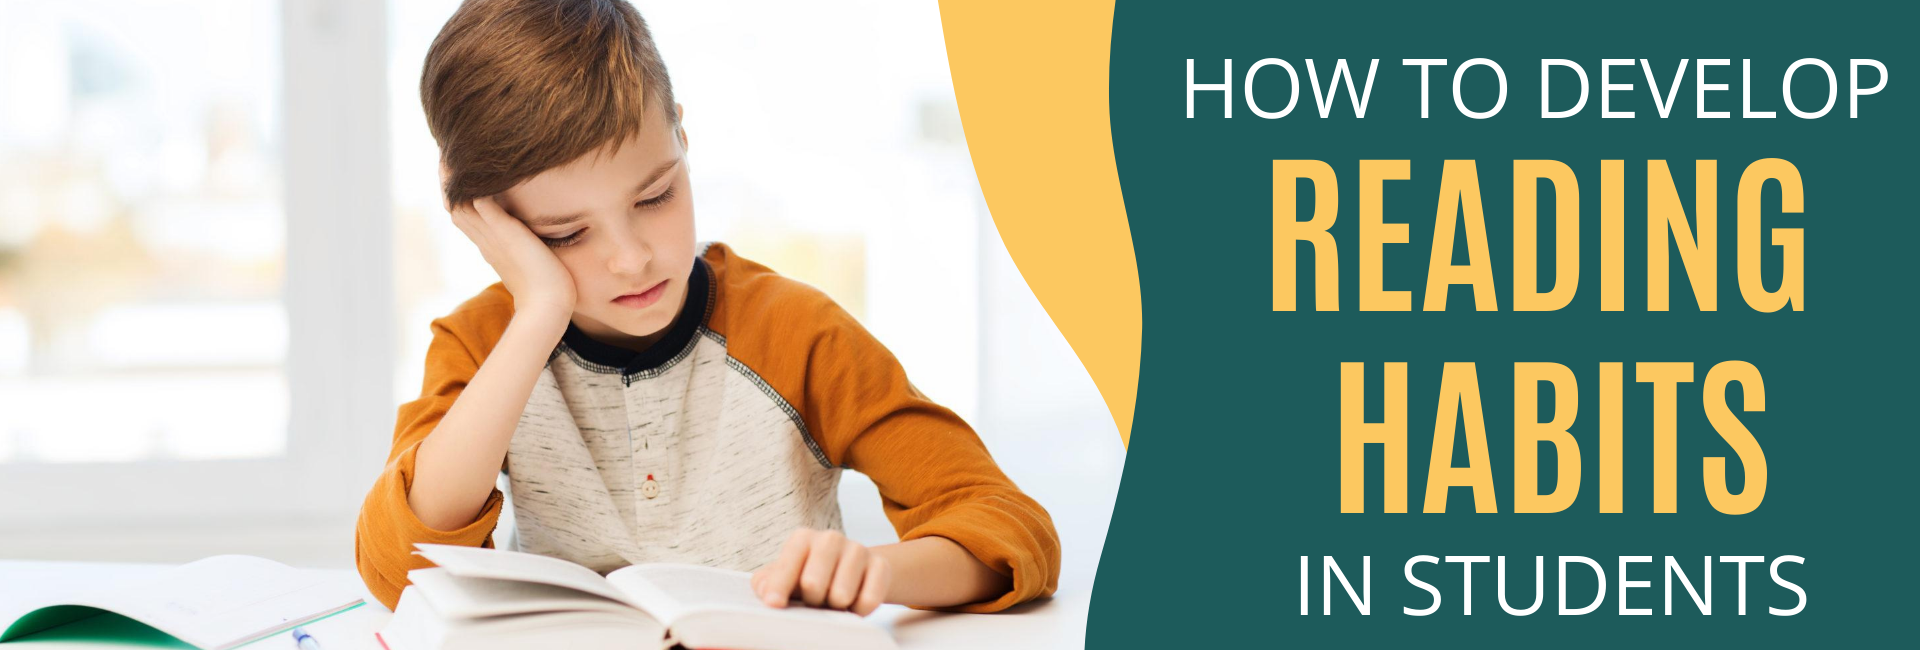 How To Develop Reading Habits In Students